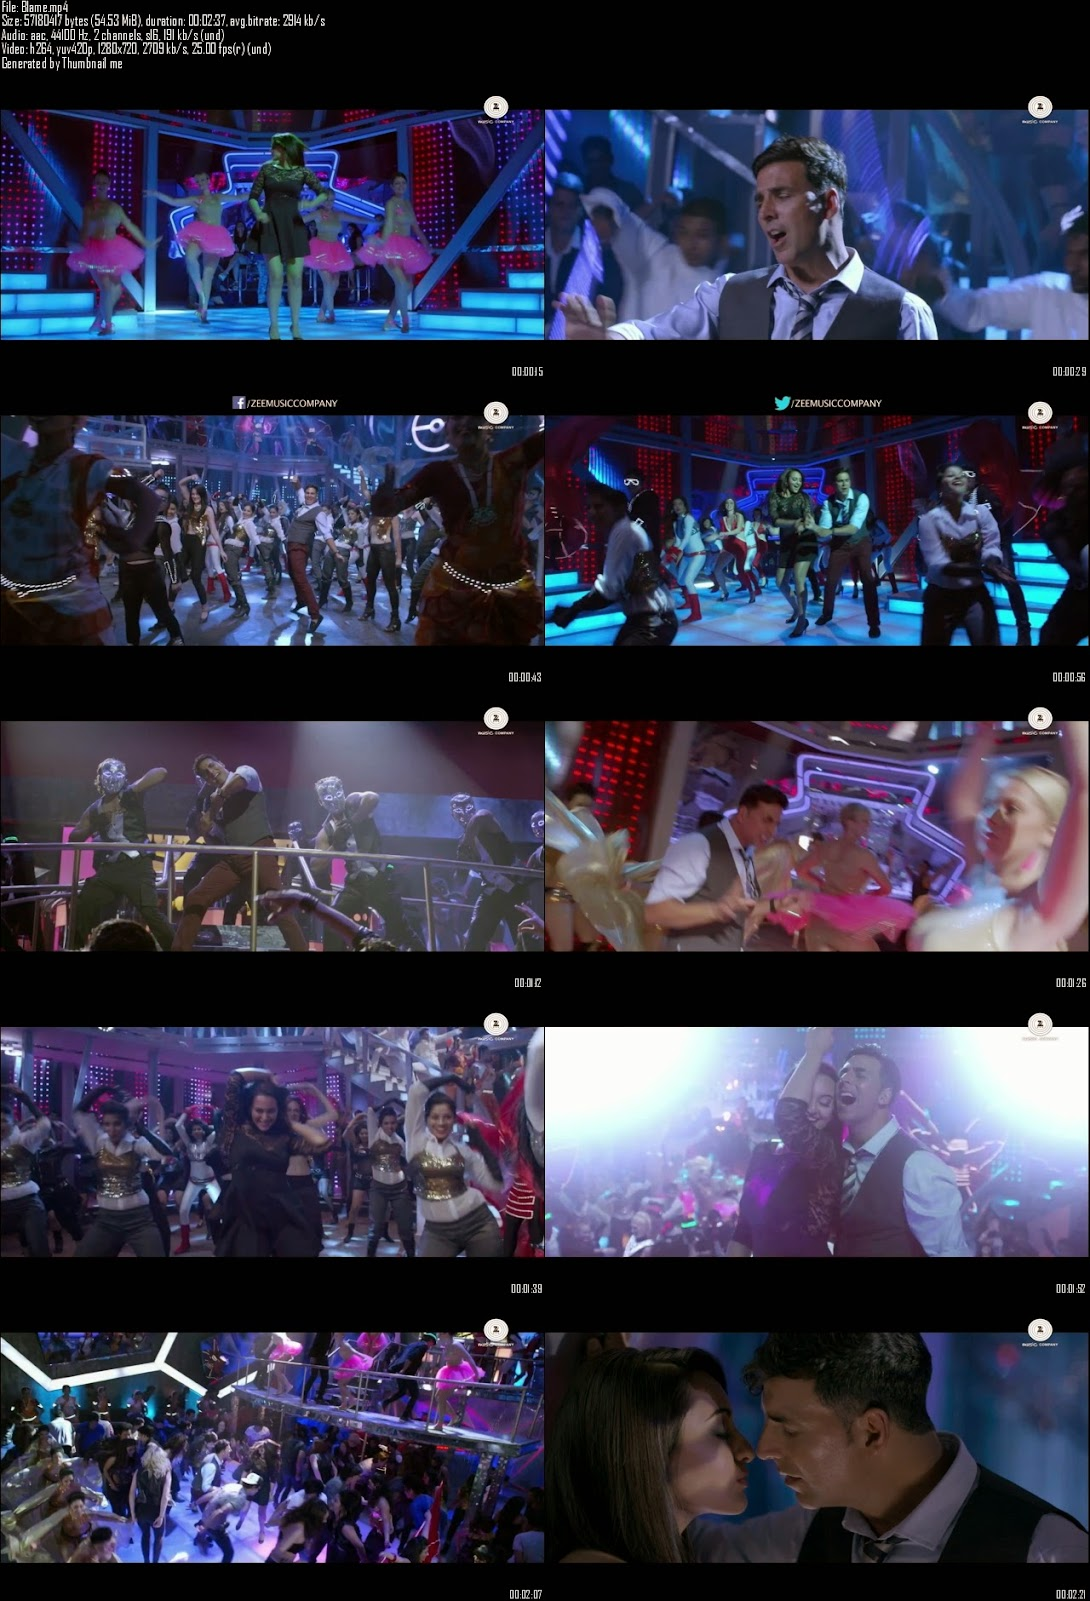 Mediafire Resumable Download Link For Video Song Blame The Night - Holiday (2014)